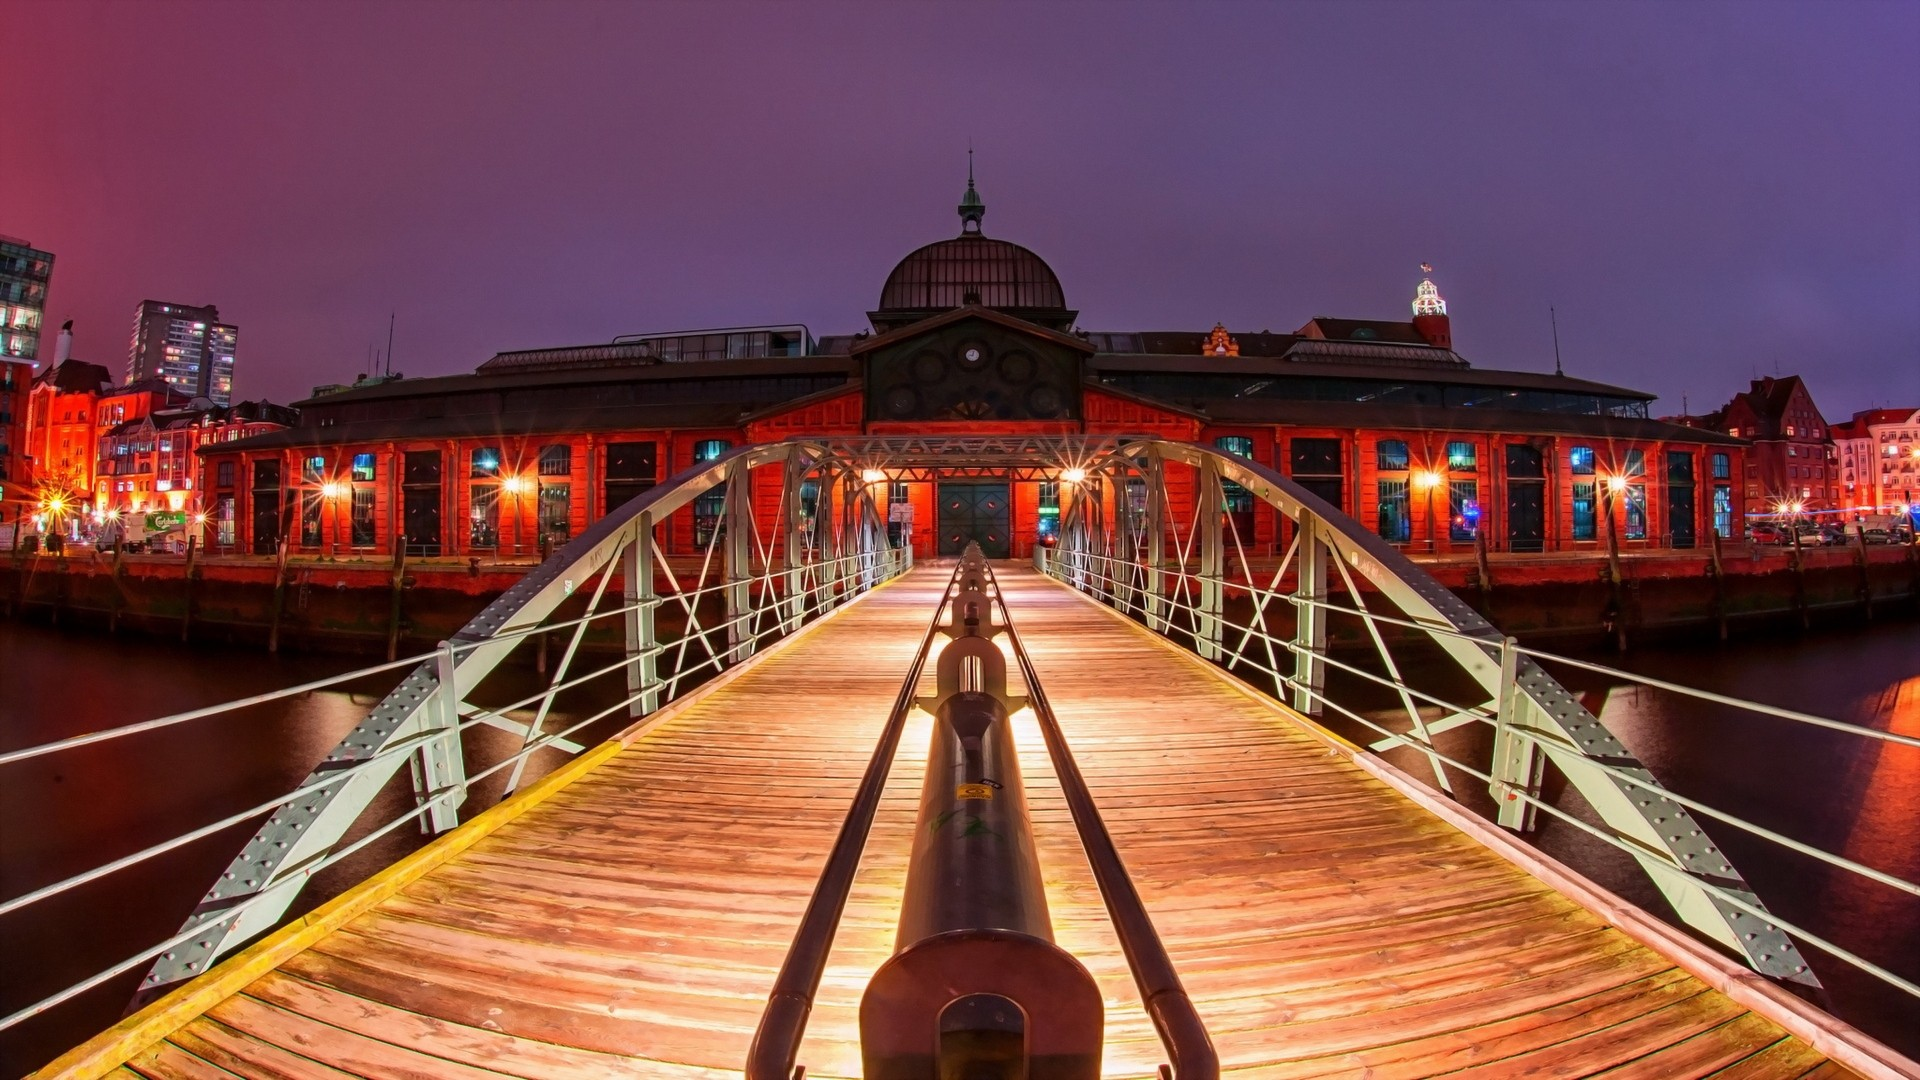 General 1920x1080 architecture city cityscape Hamburg Germany water old building night lights sky wooden surface bridge river fisheye lens metal landscape